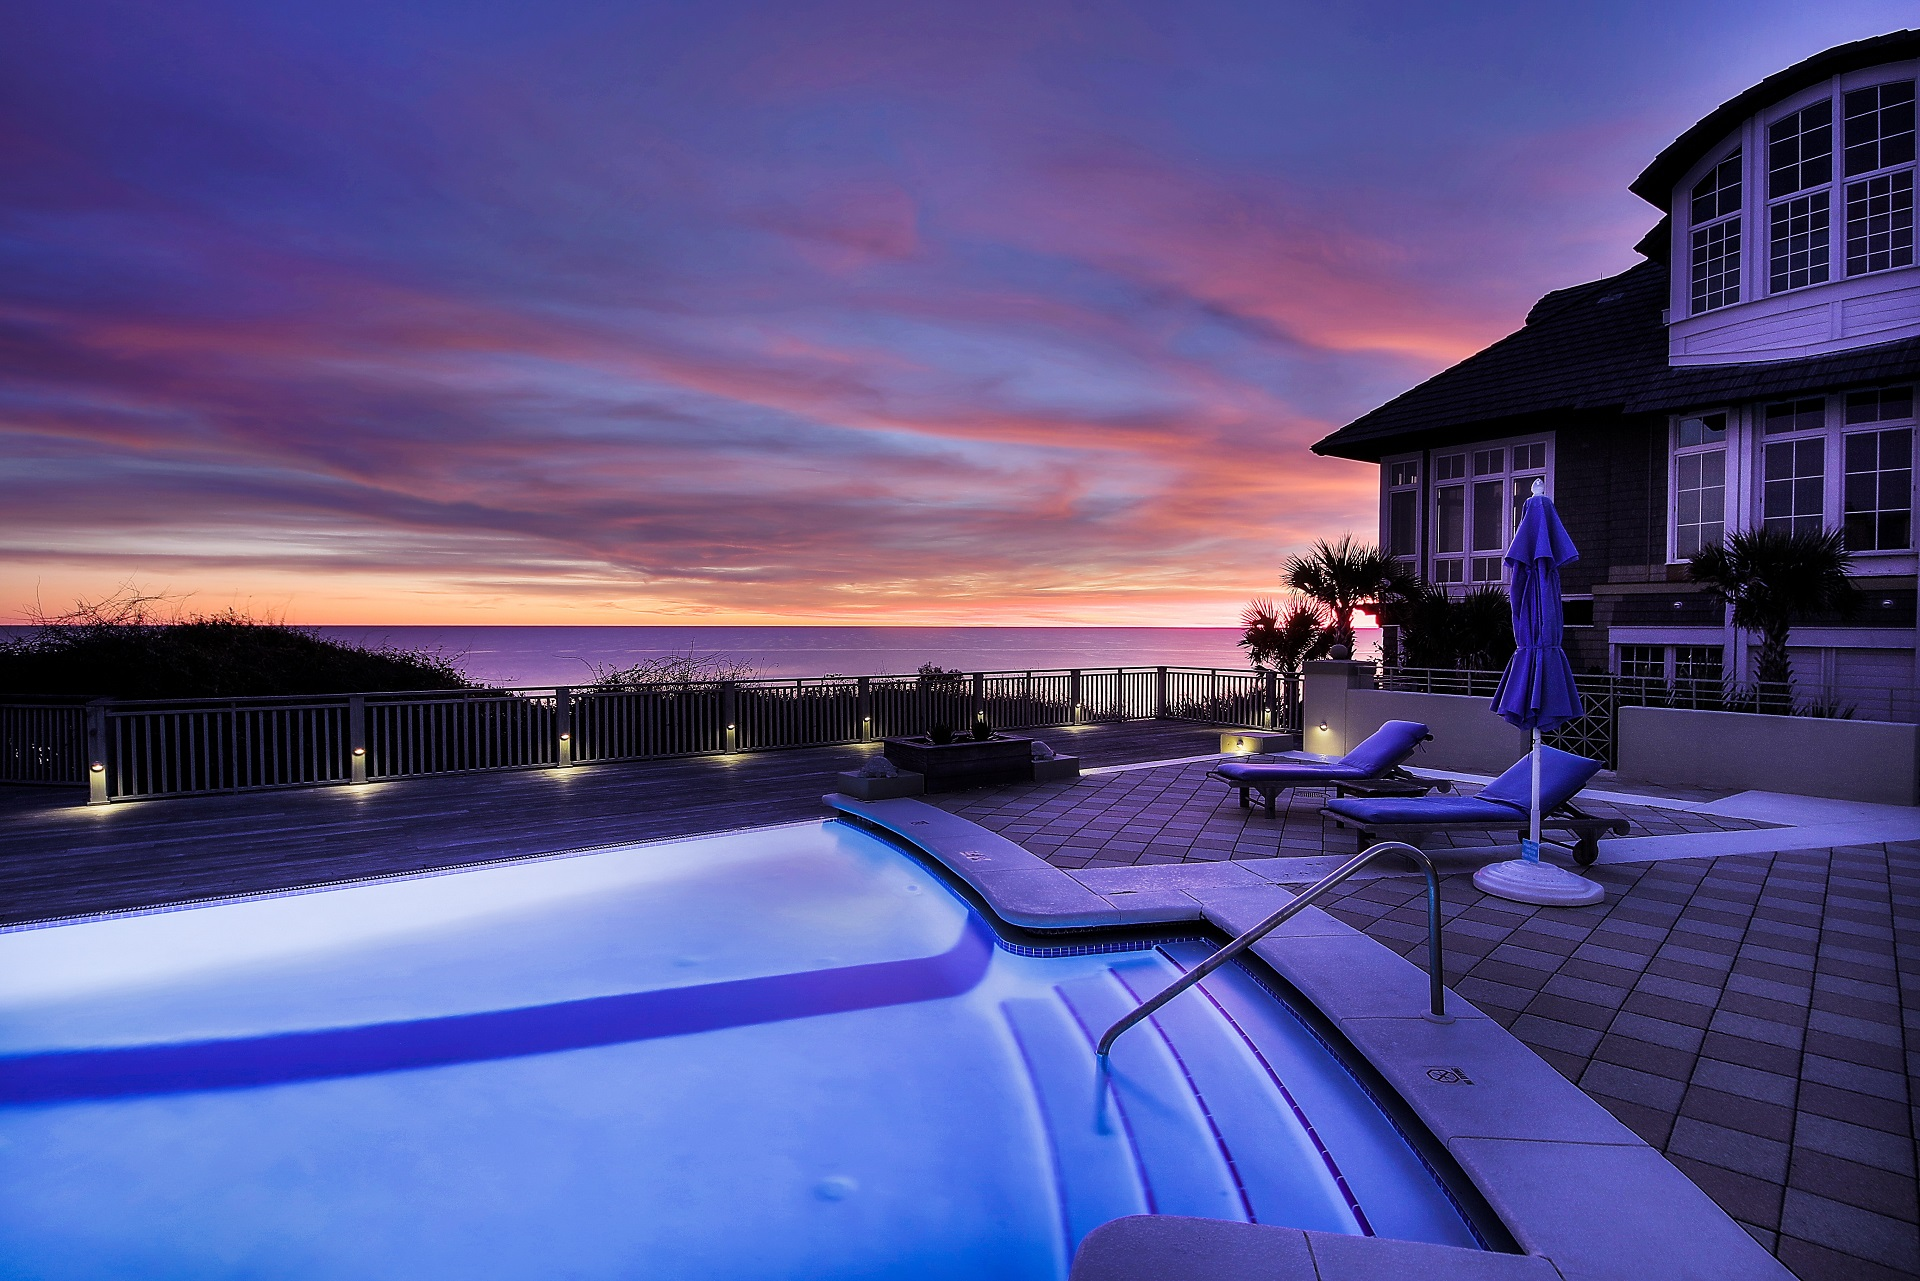 pool during sunset